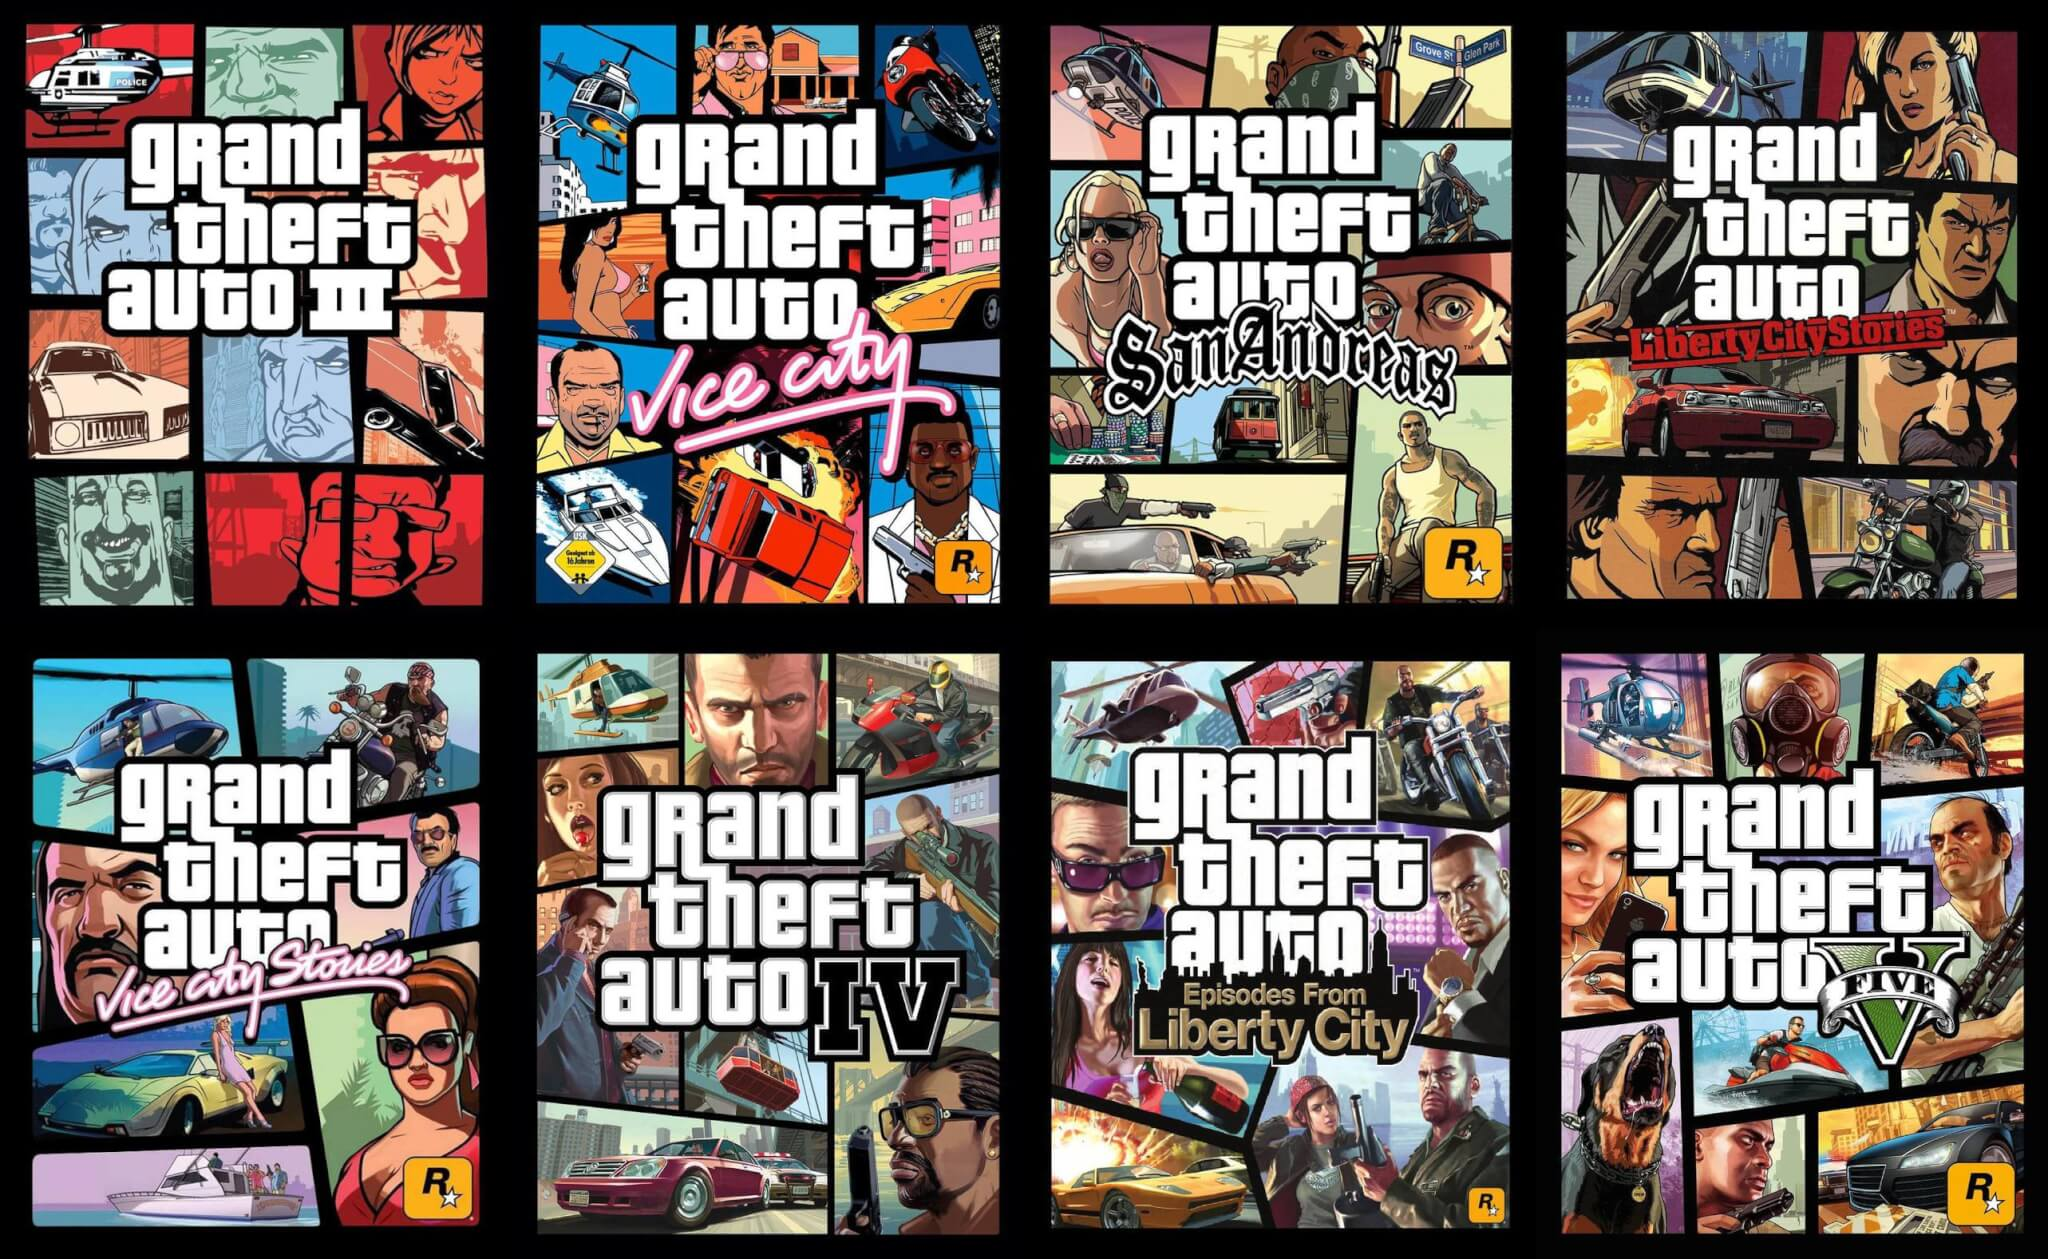 gta covers